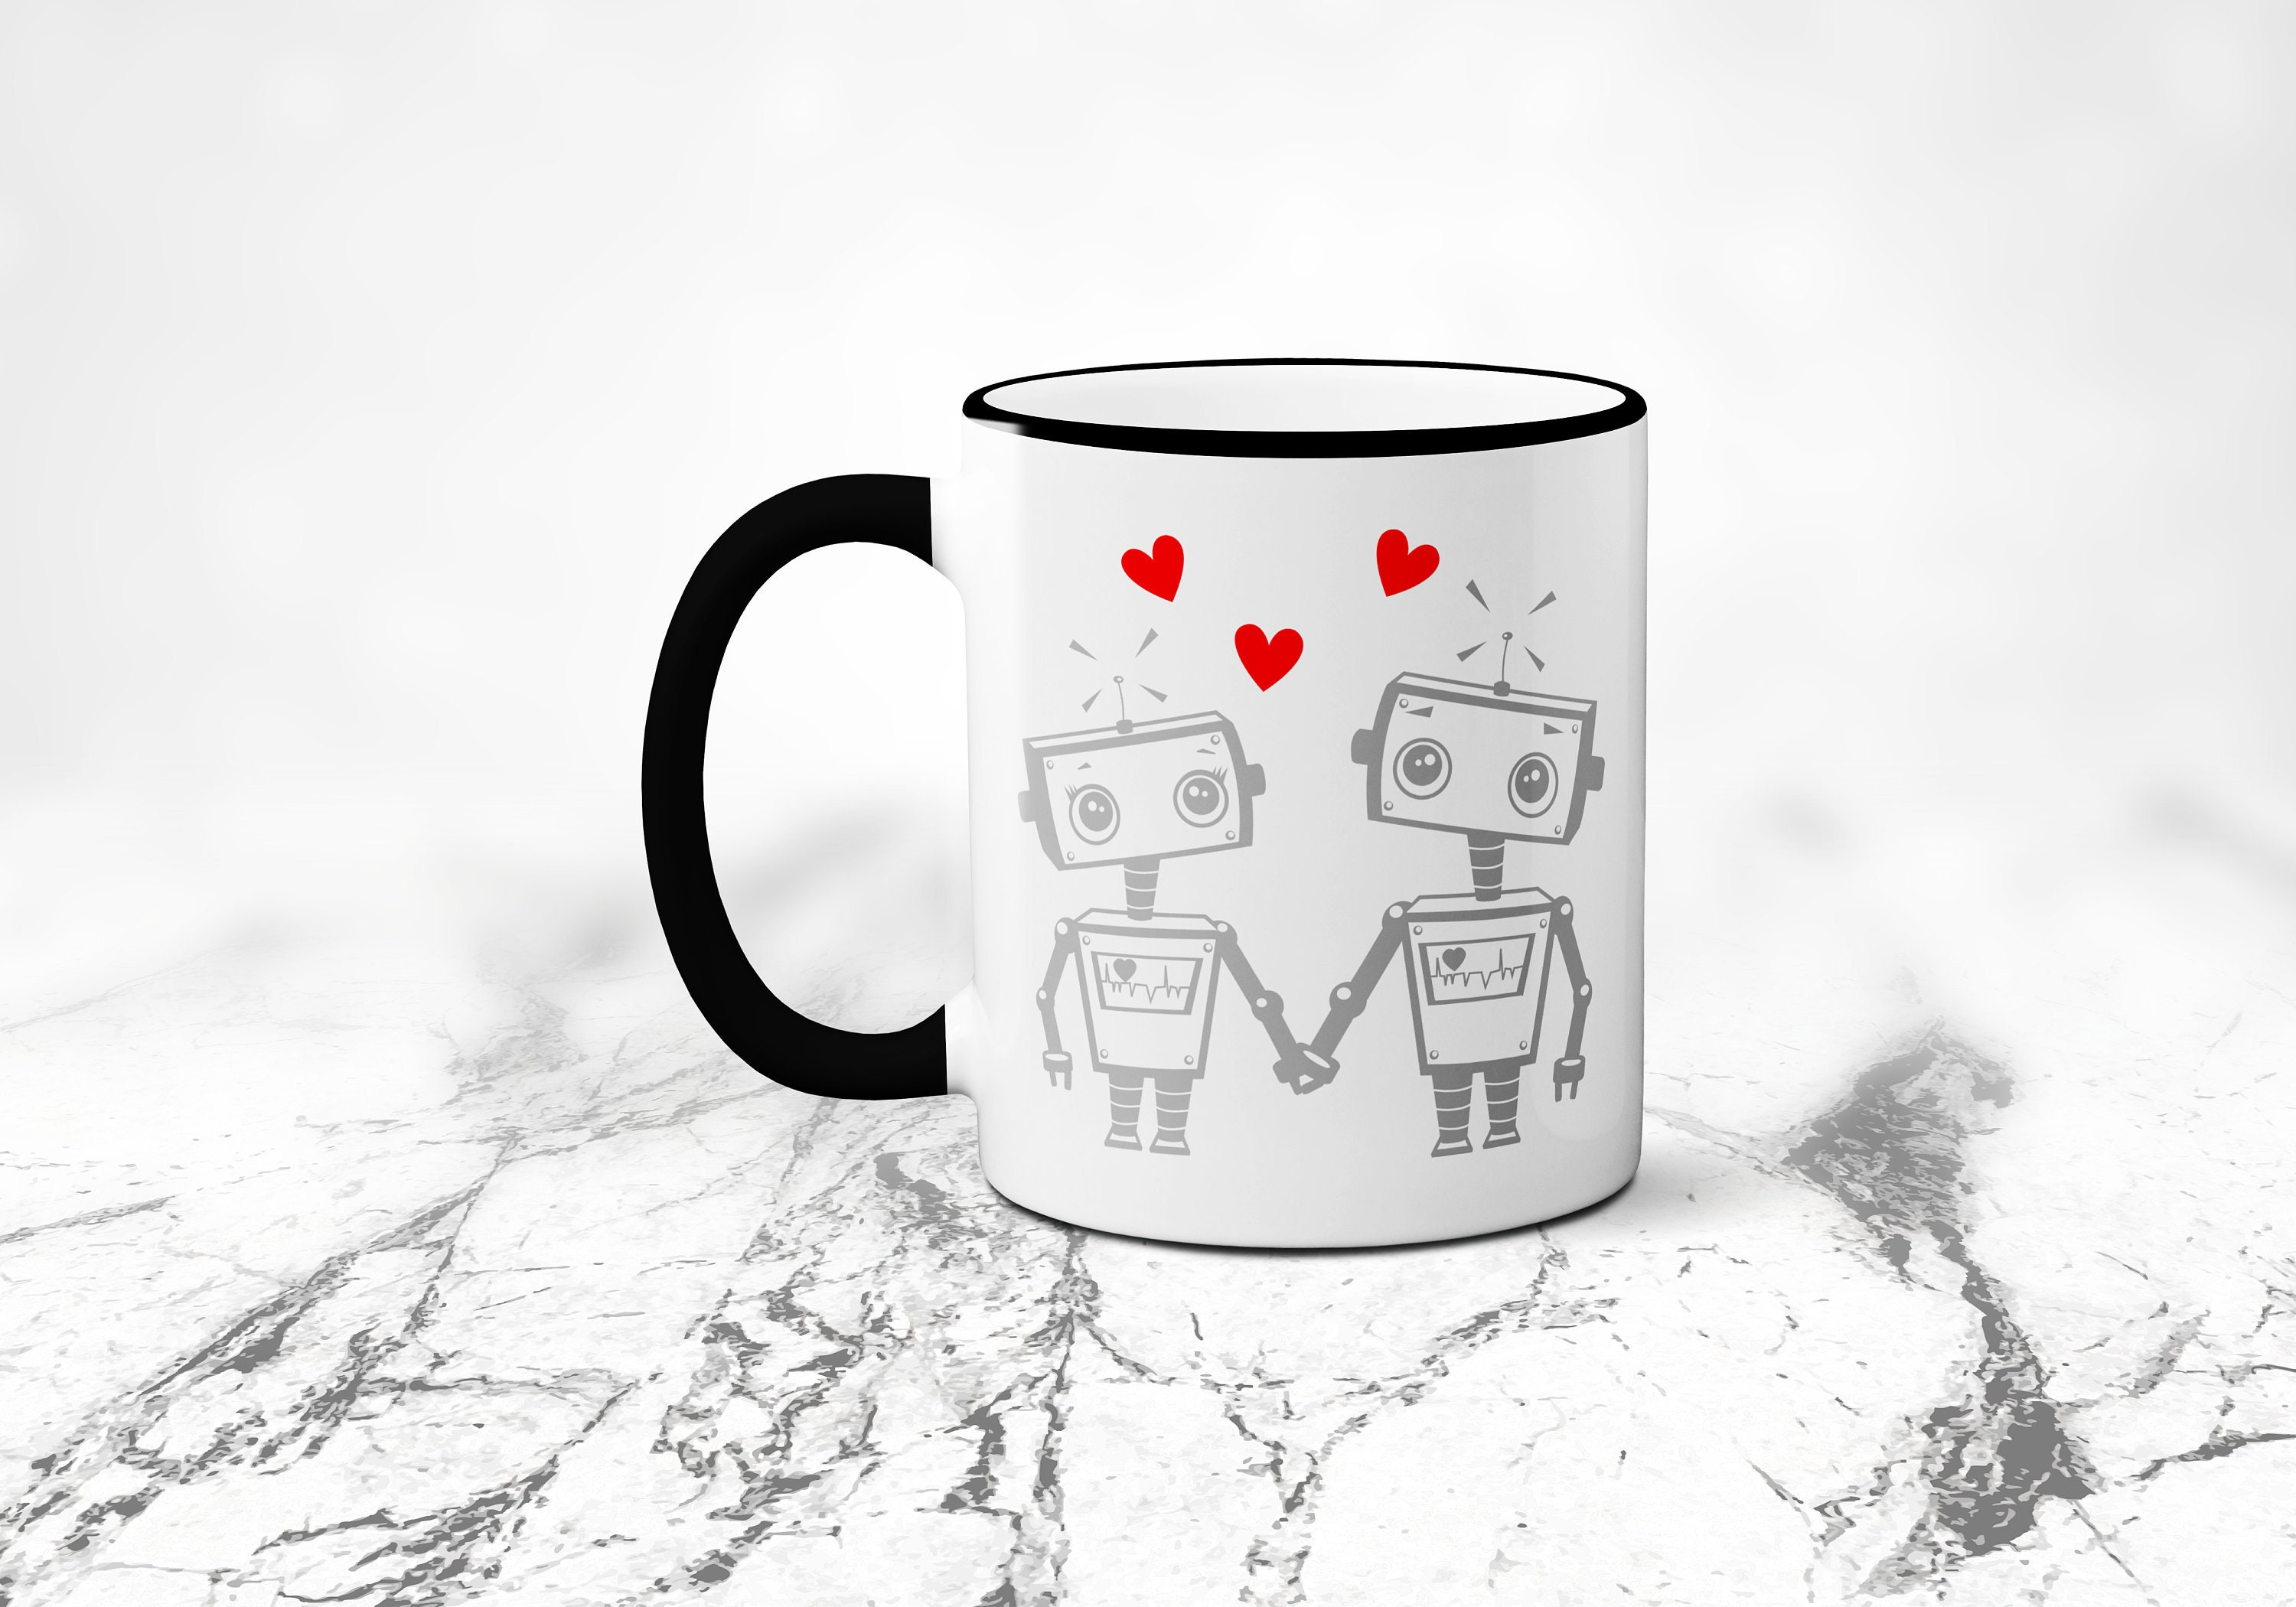 Rim CupFunny 11 In Colors DaySublimated Handleamp; MugLoveGeek Valentines 4 OzColored Robot Coffee Geeky lK1FJc